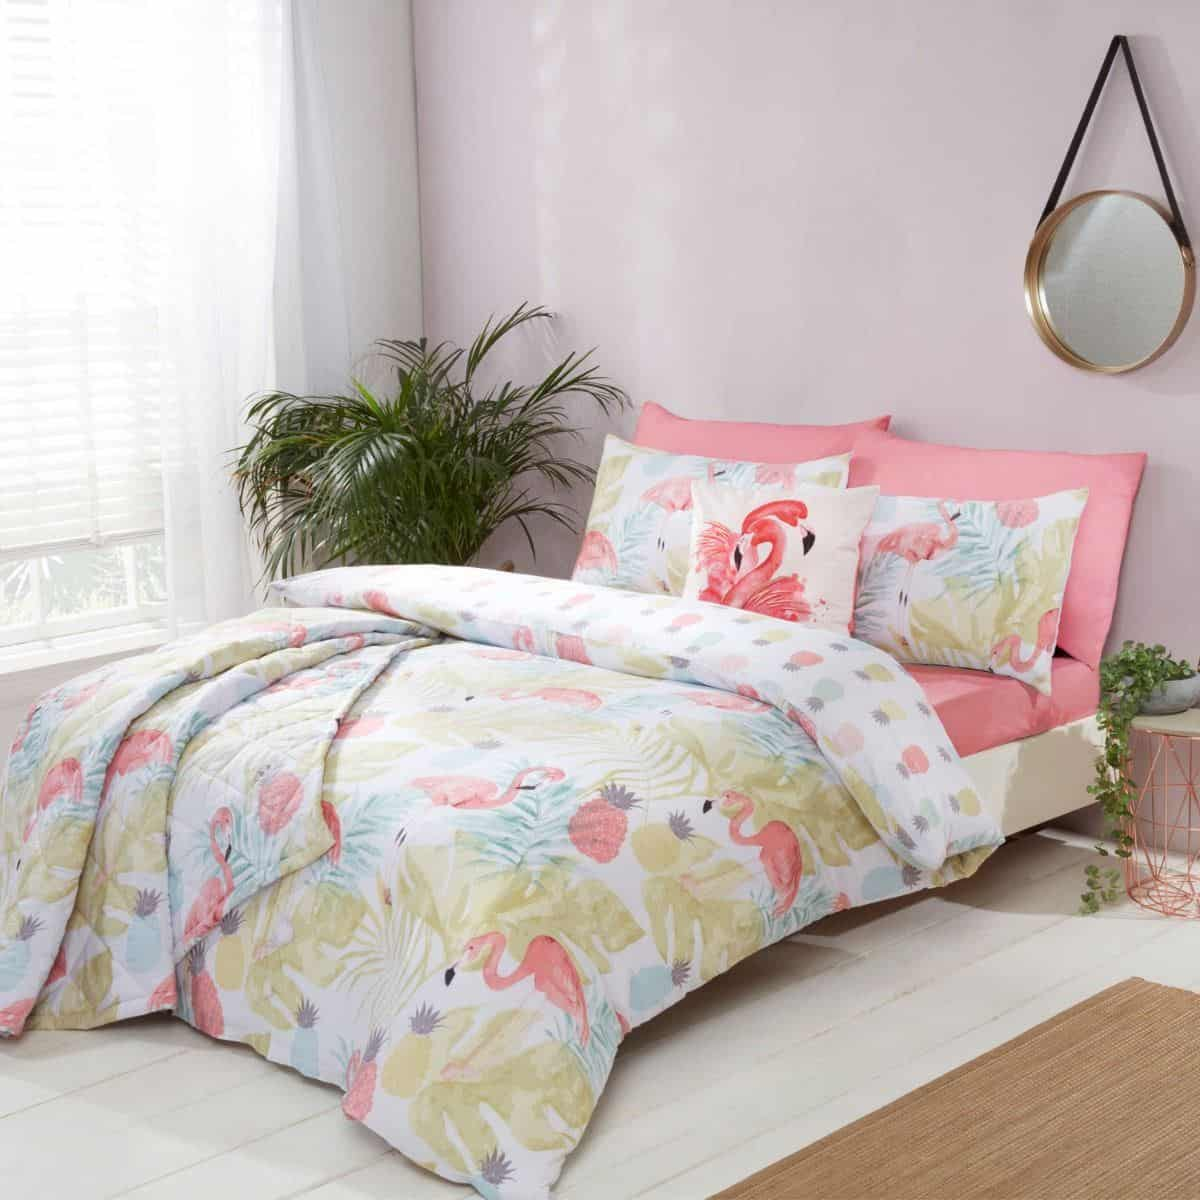 A feminine bedroom in grey and pink tomes featuring tropical flamingo bedding. The relaxing tones of this bedroom will aid good quality sleep.